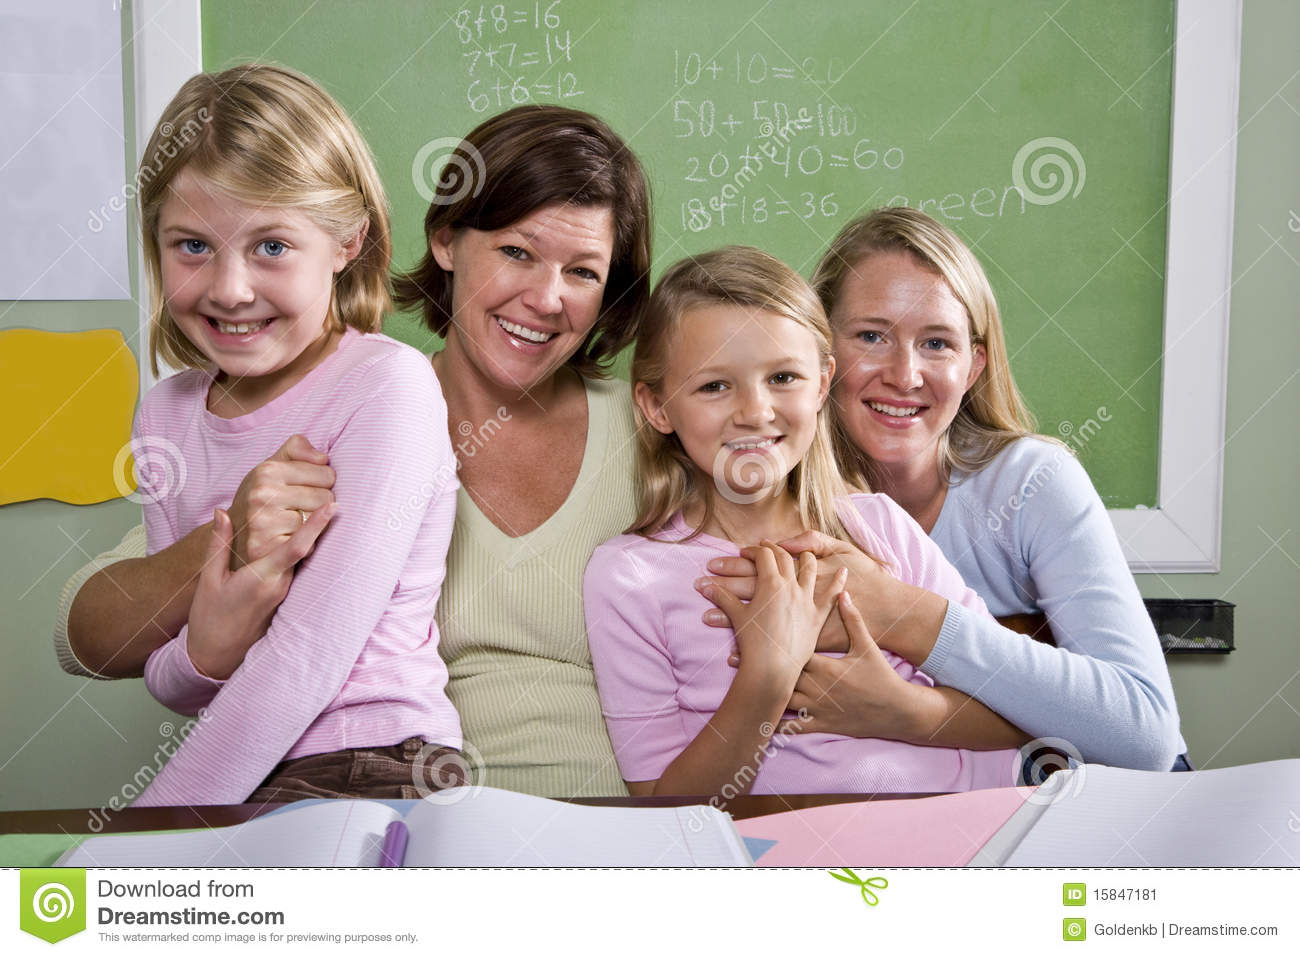 Teachers And Students In Classroom Stock Image - Image: 15847181